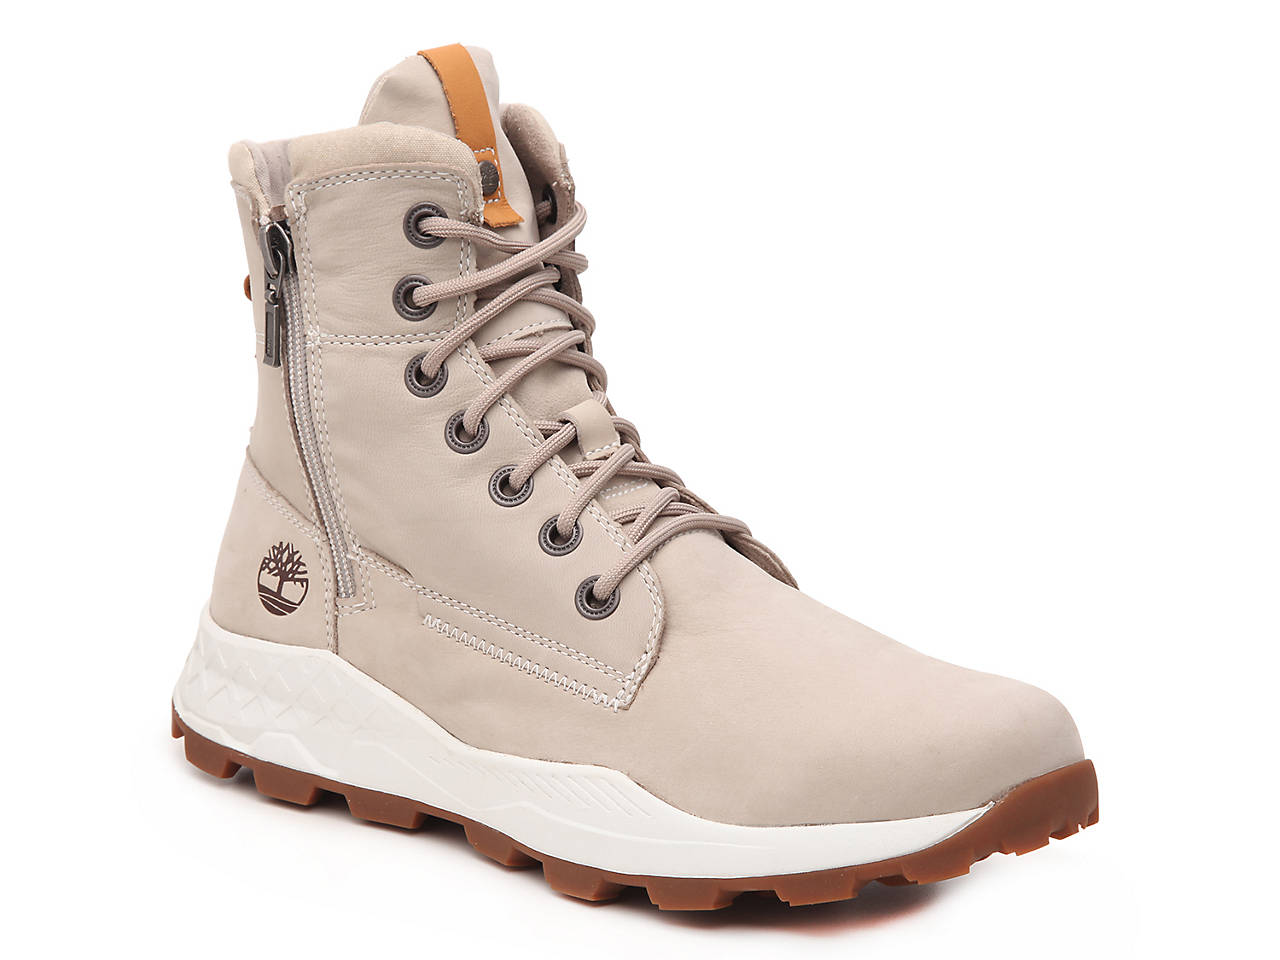 Timberland Brooklyn Hiking Boot Men's Shoes | DSW